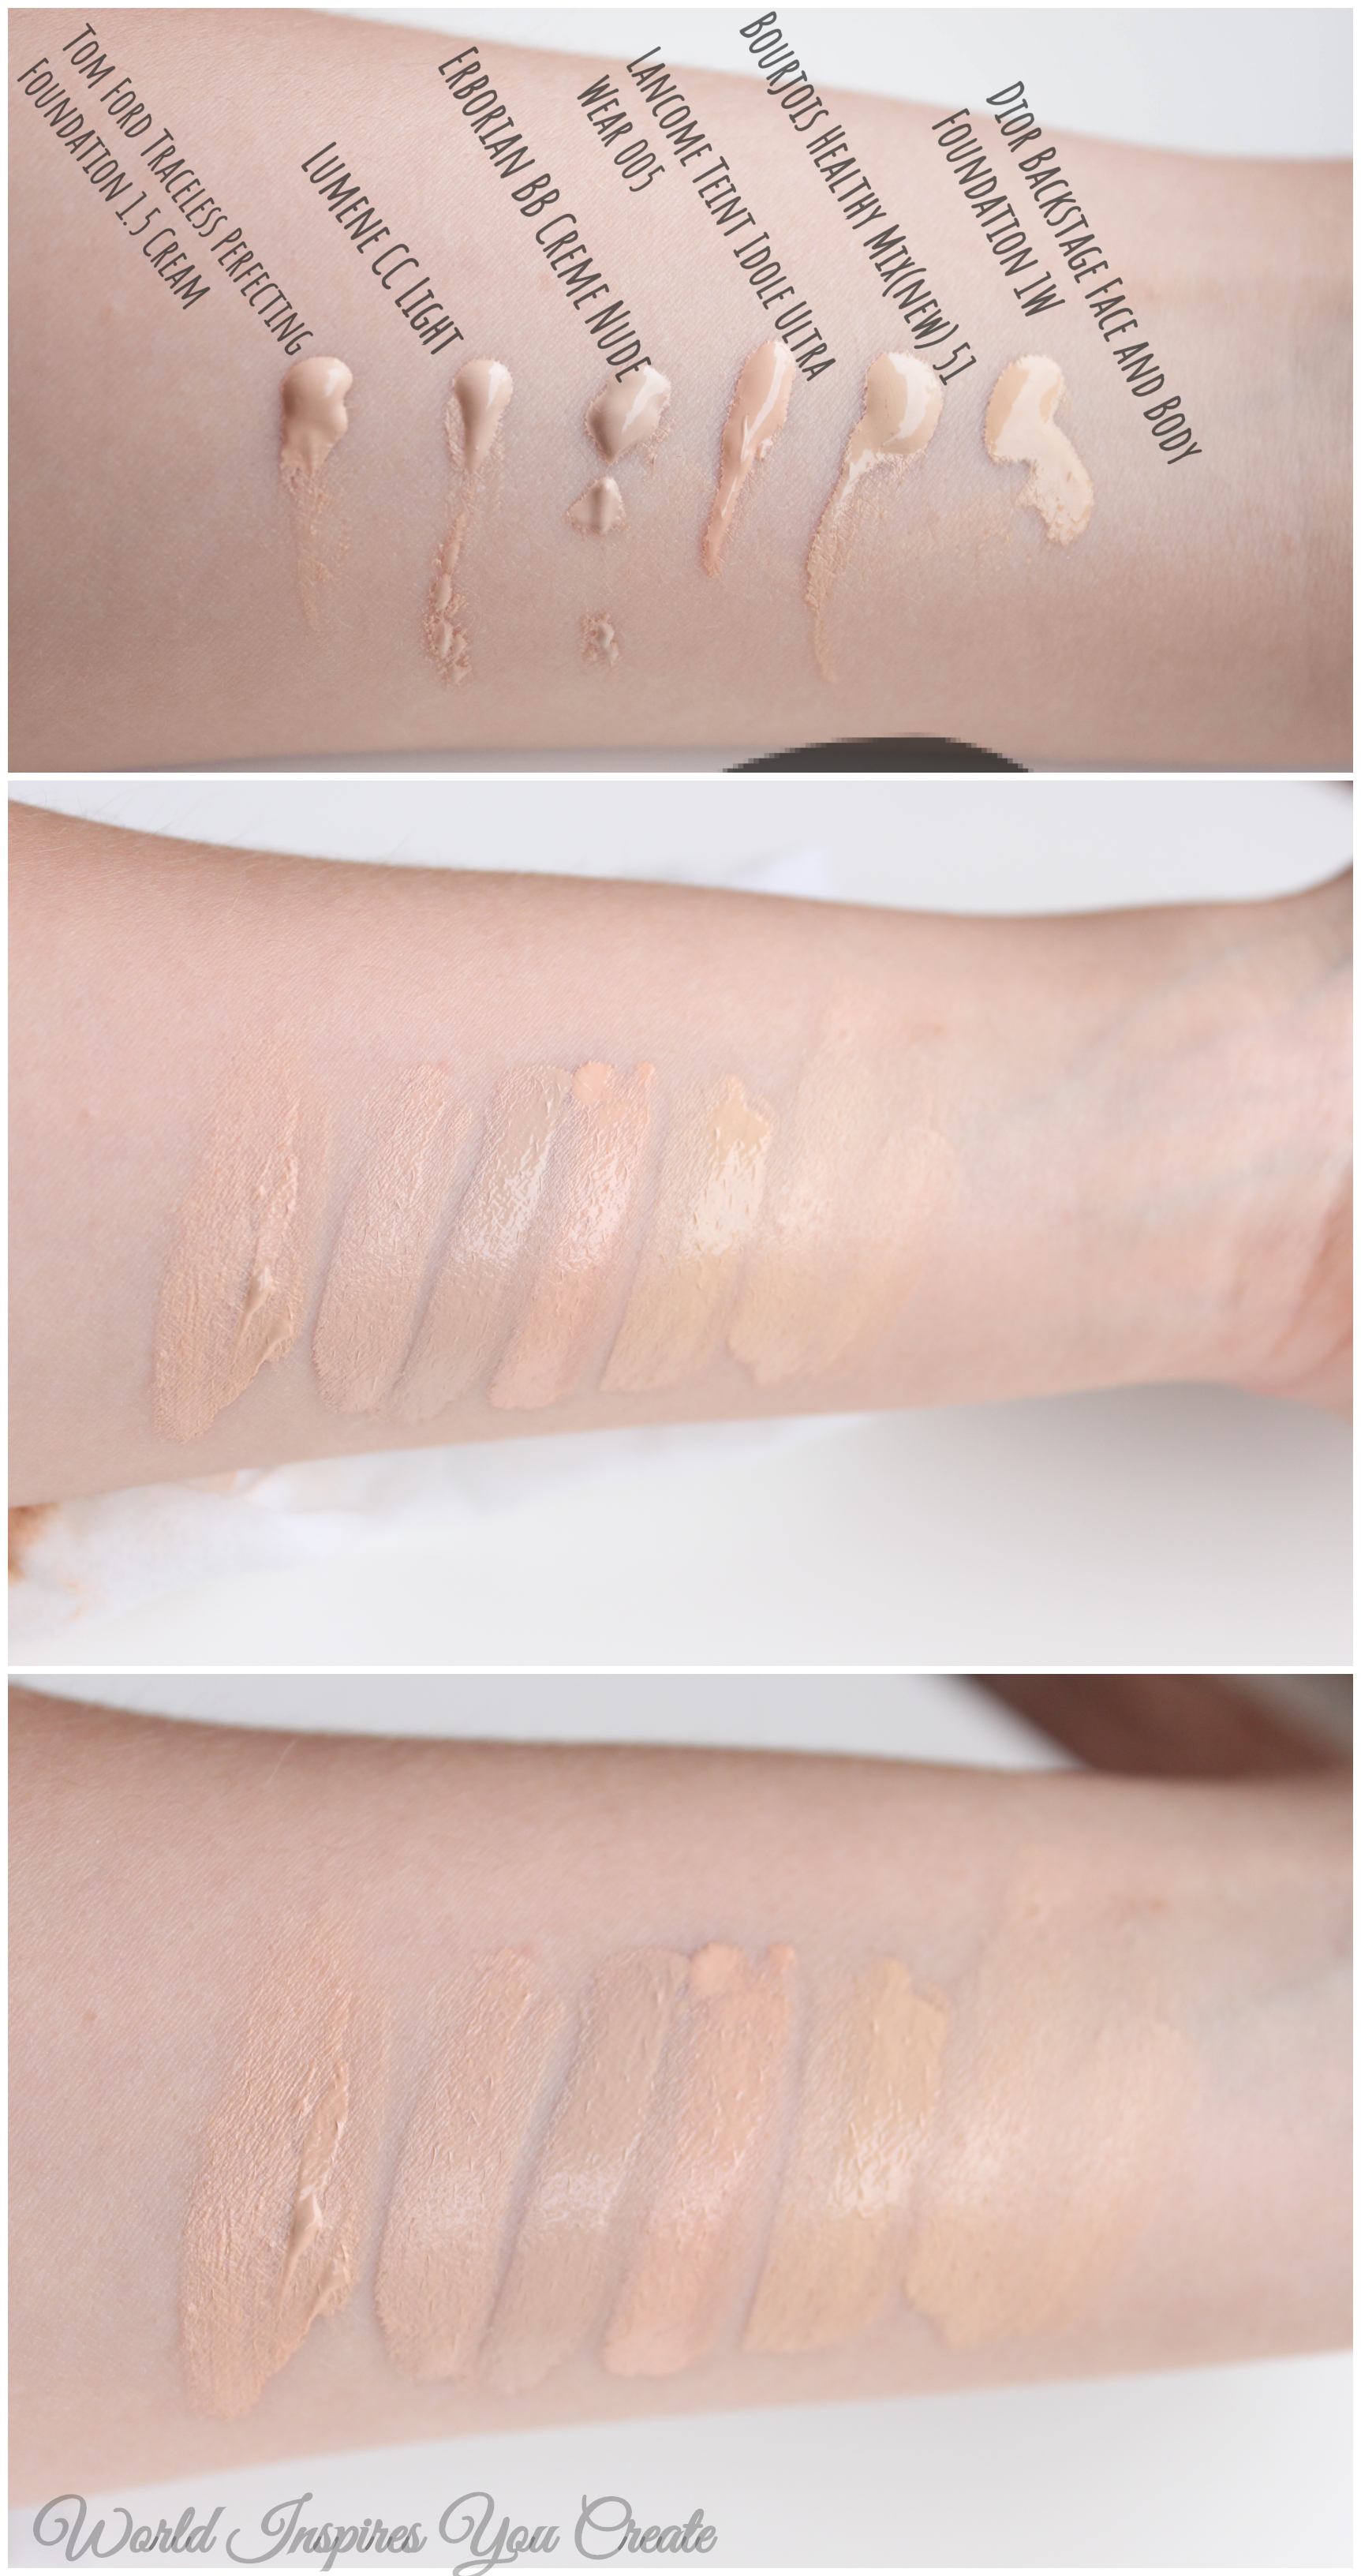 Dior Backstage Face And Body Foundation 1w Review Shade Comparison World Inspires You Create